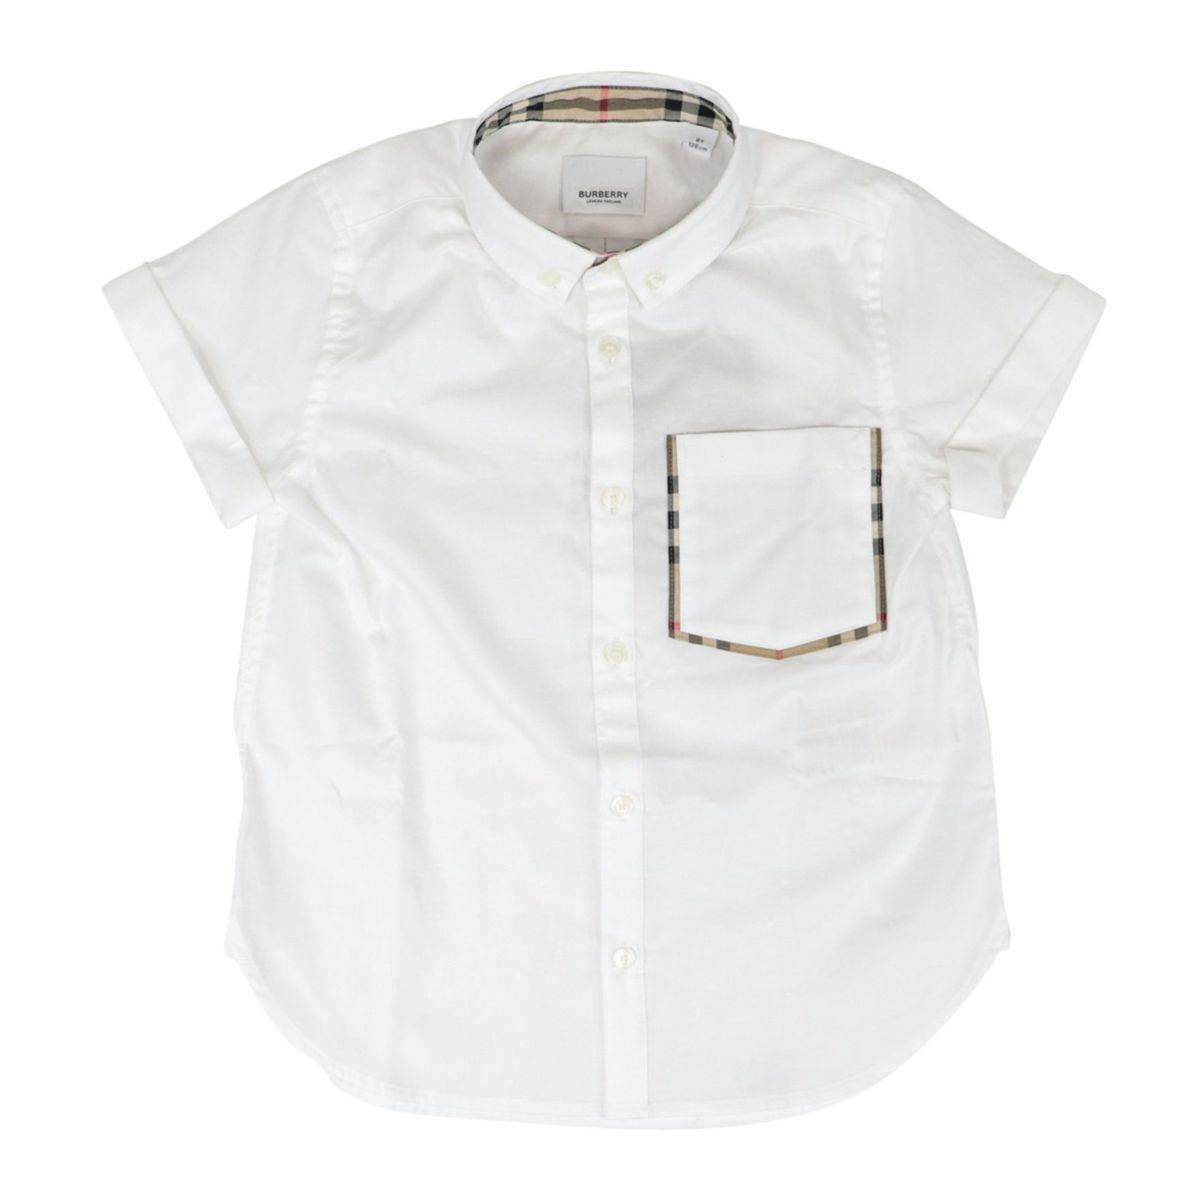 Harry short-sleeved cotton shirt with check fabric details White Burberry